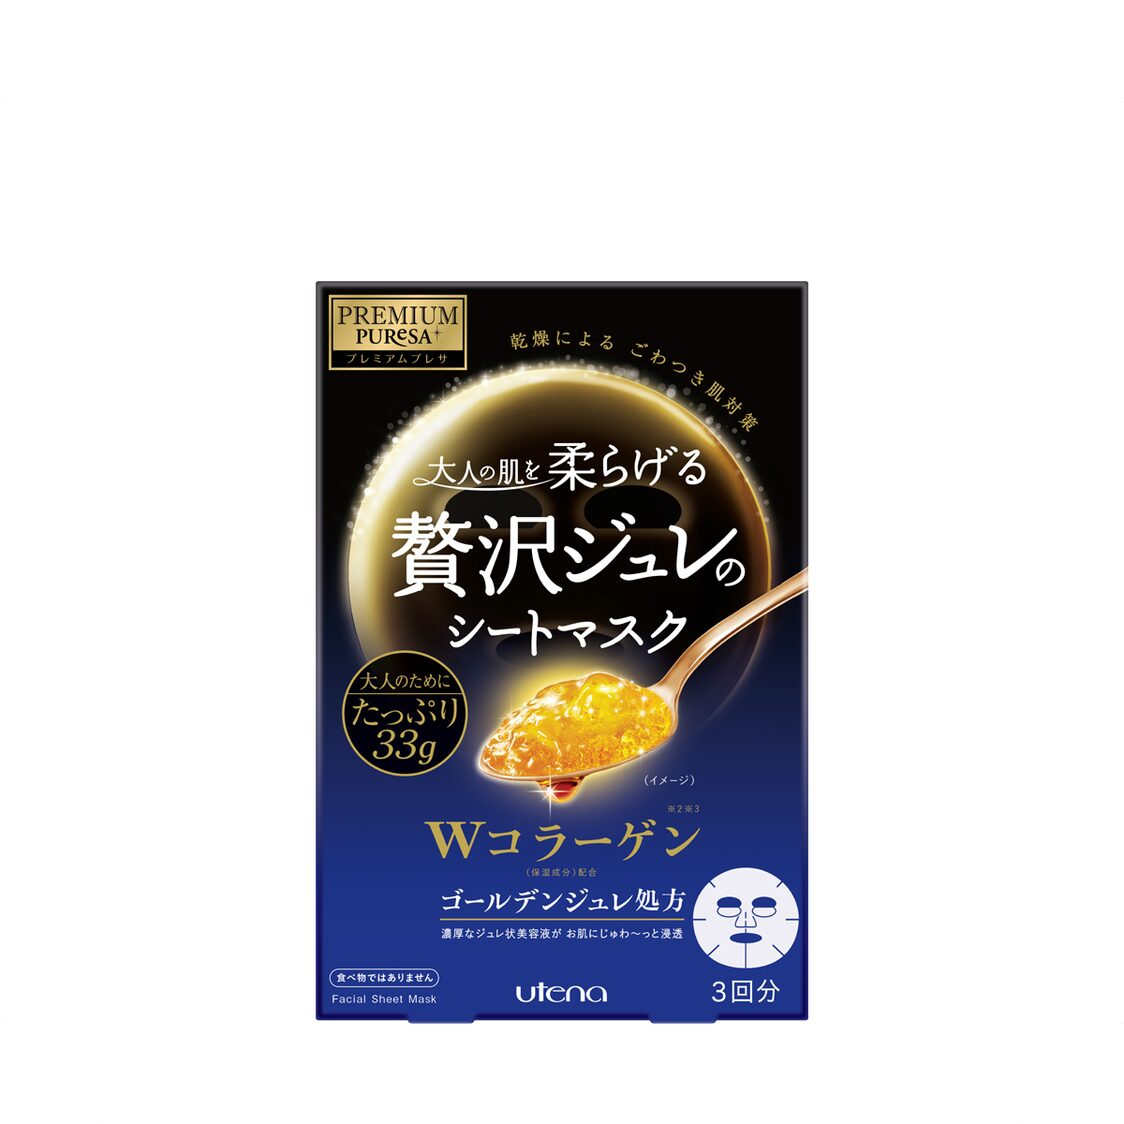 Premium Puresa Golden Jelly Mask Collagen